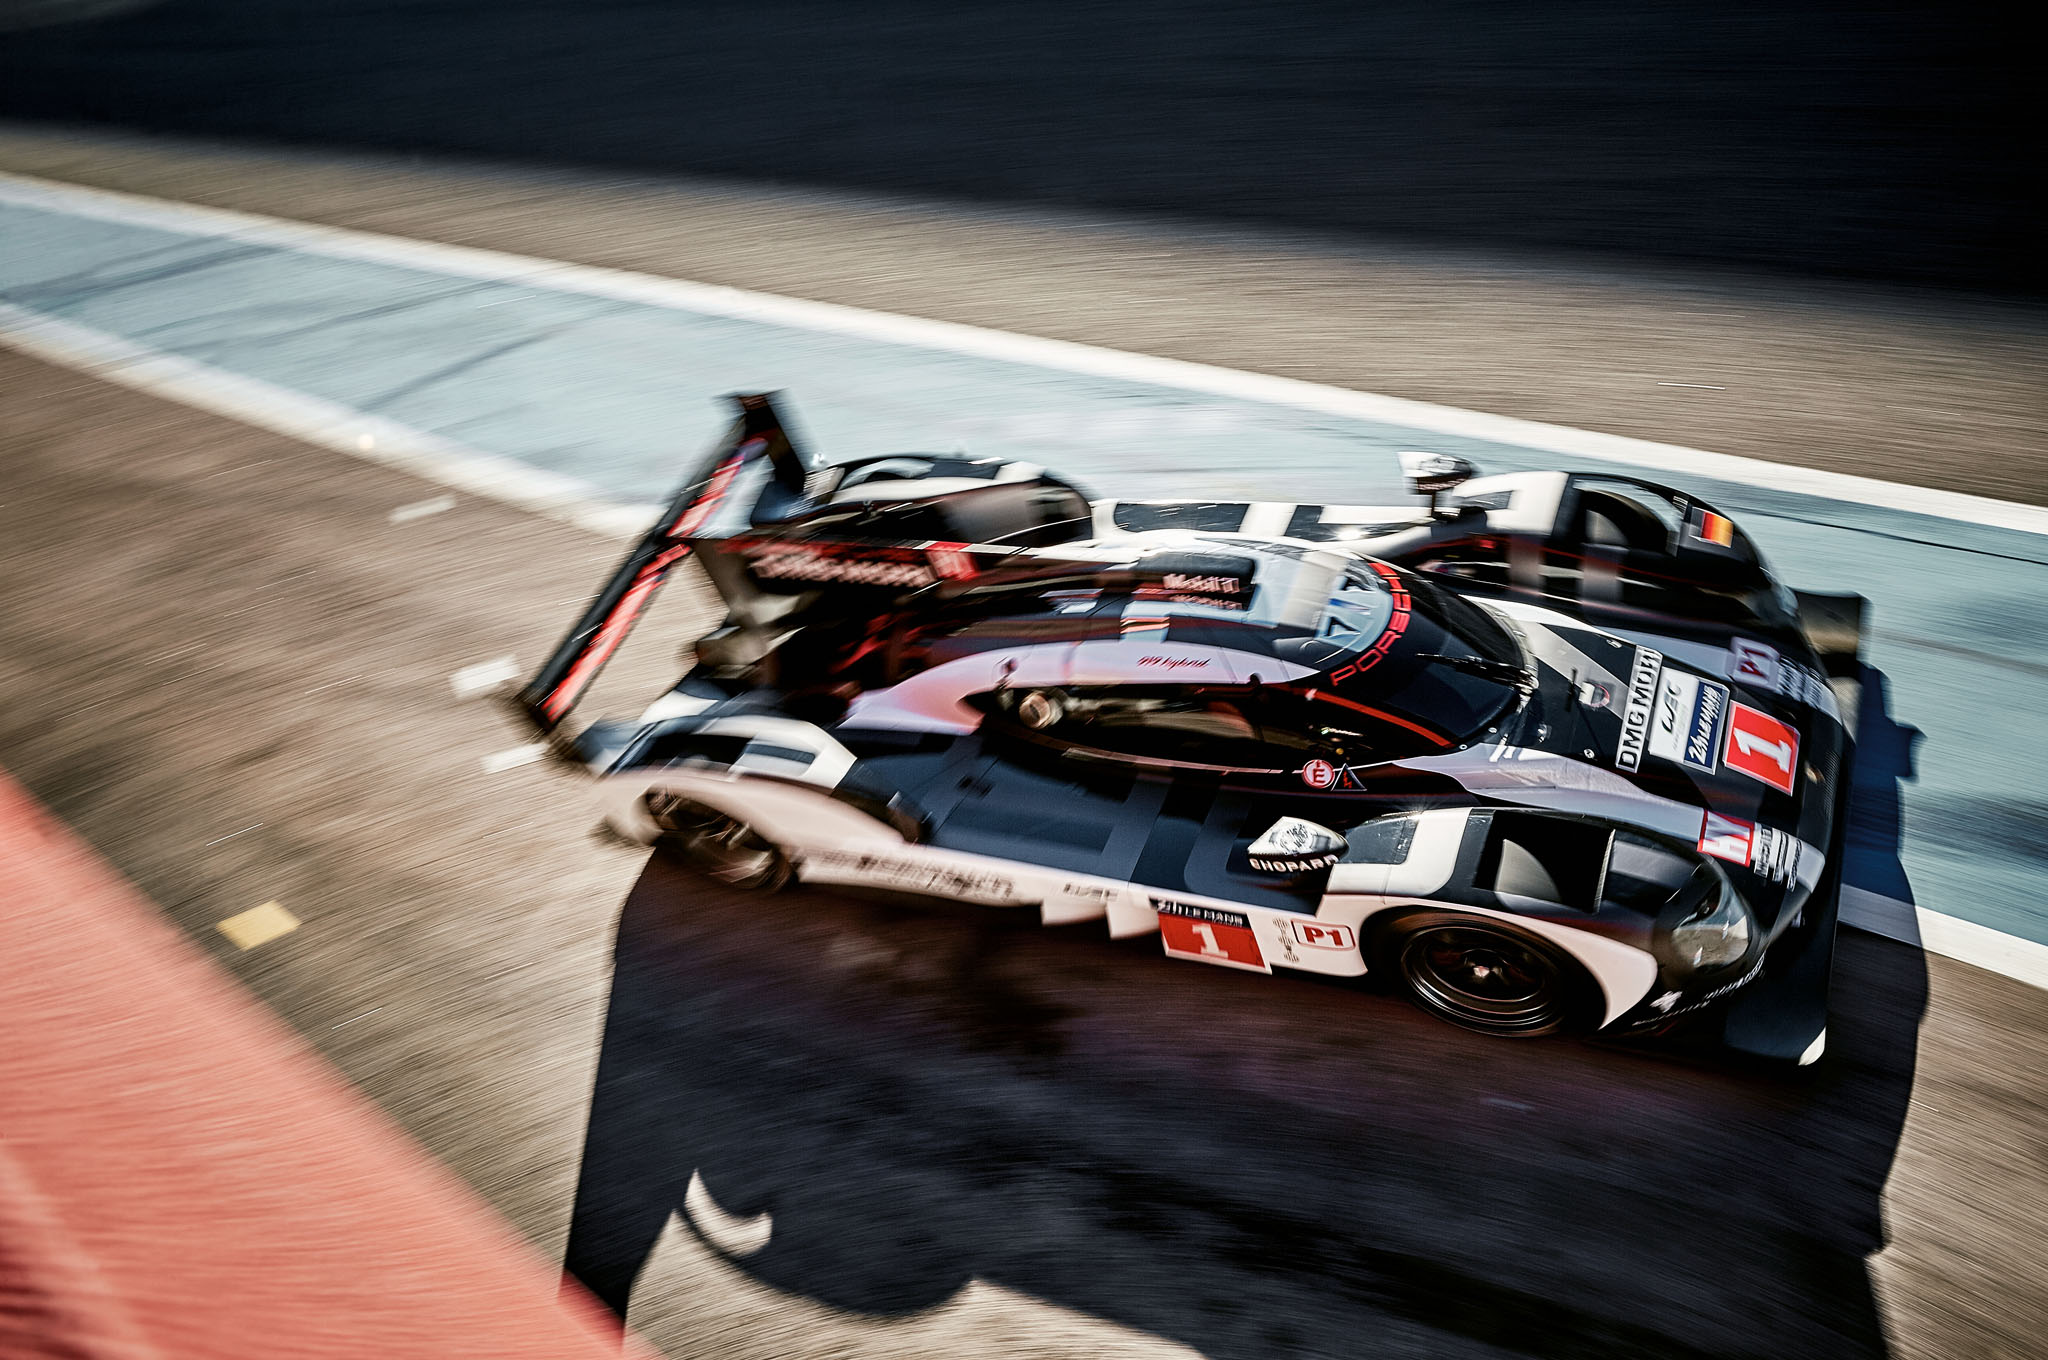 Porsche 919 Hybrid Loses Power Gains Aerodynamic Updates For 2016